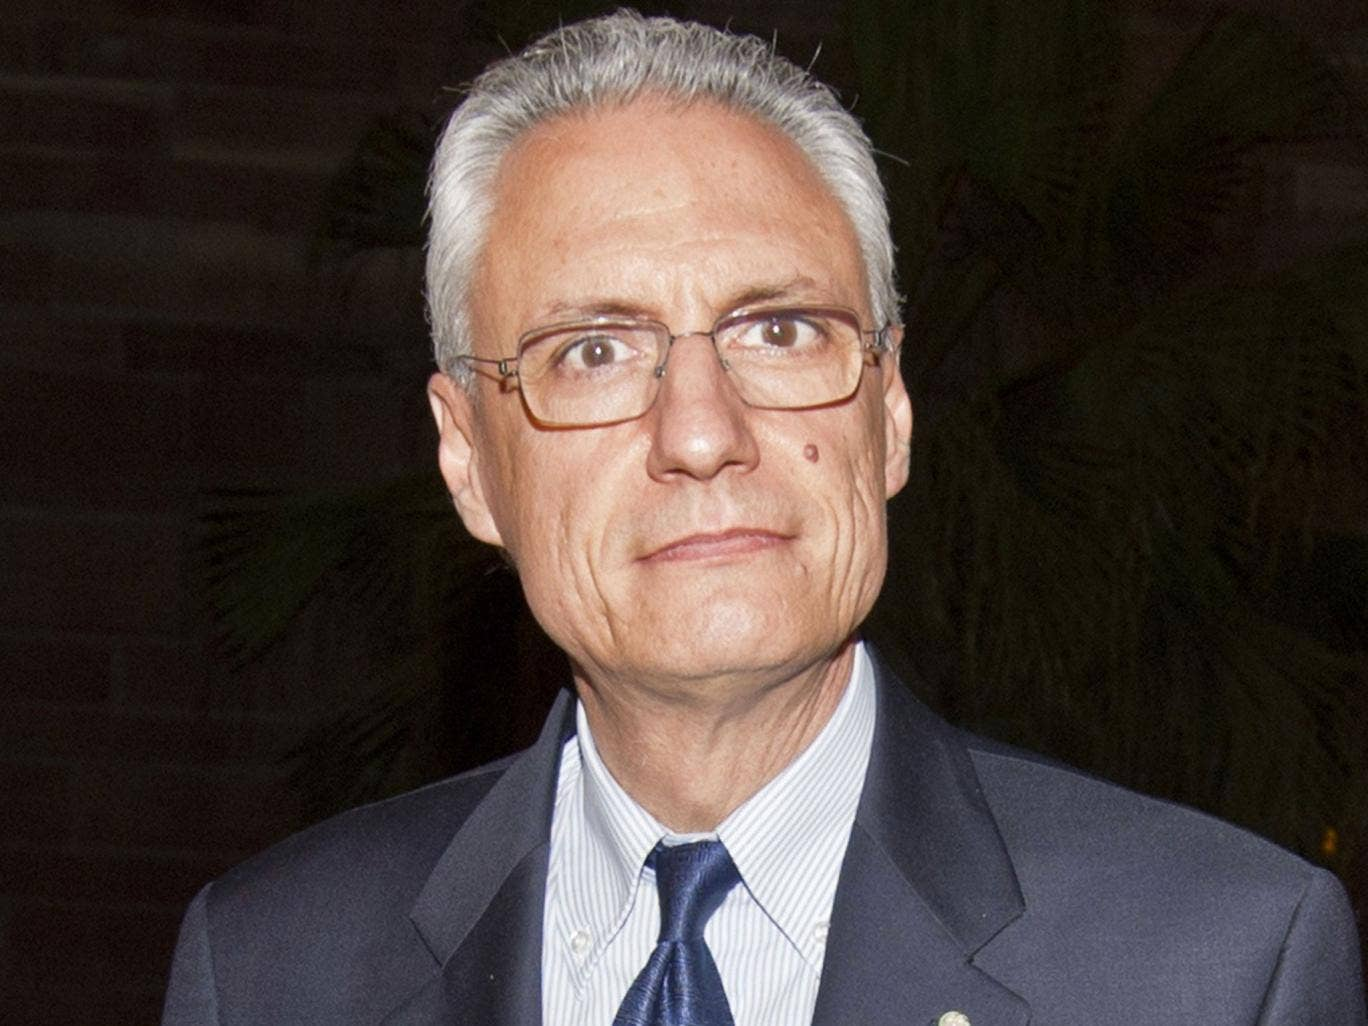 Italian ambassador to India, Daniele Mancini, has had his travel ban extended 'until further notice'